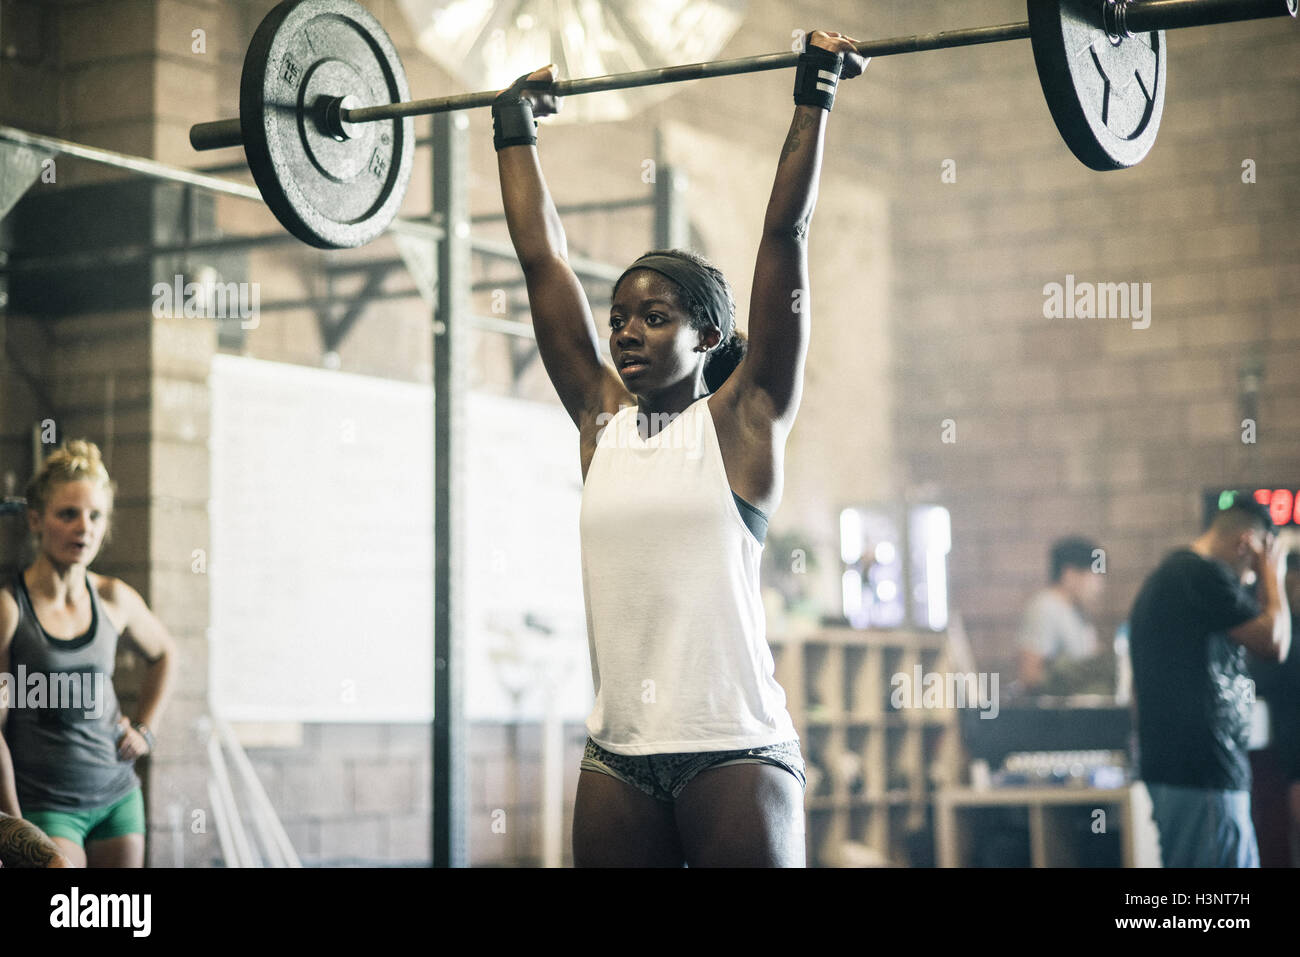 Cross Training Athlet heben Langhantel im Fitness-Studio Stockbild